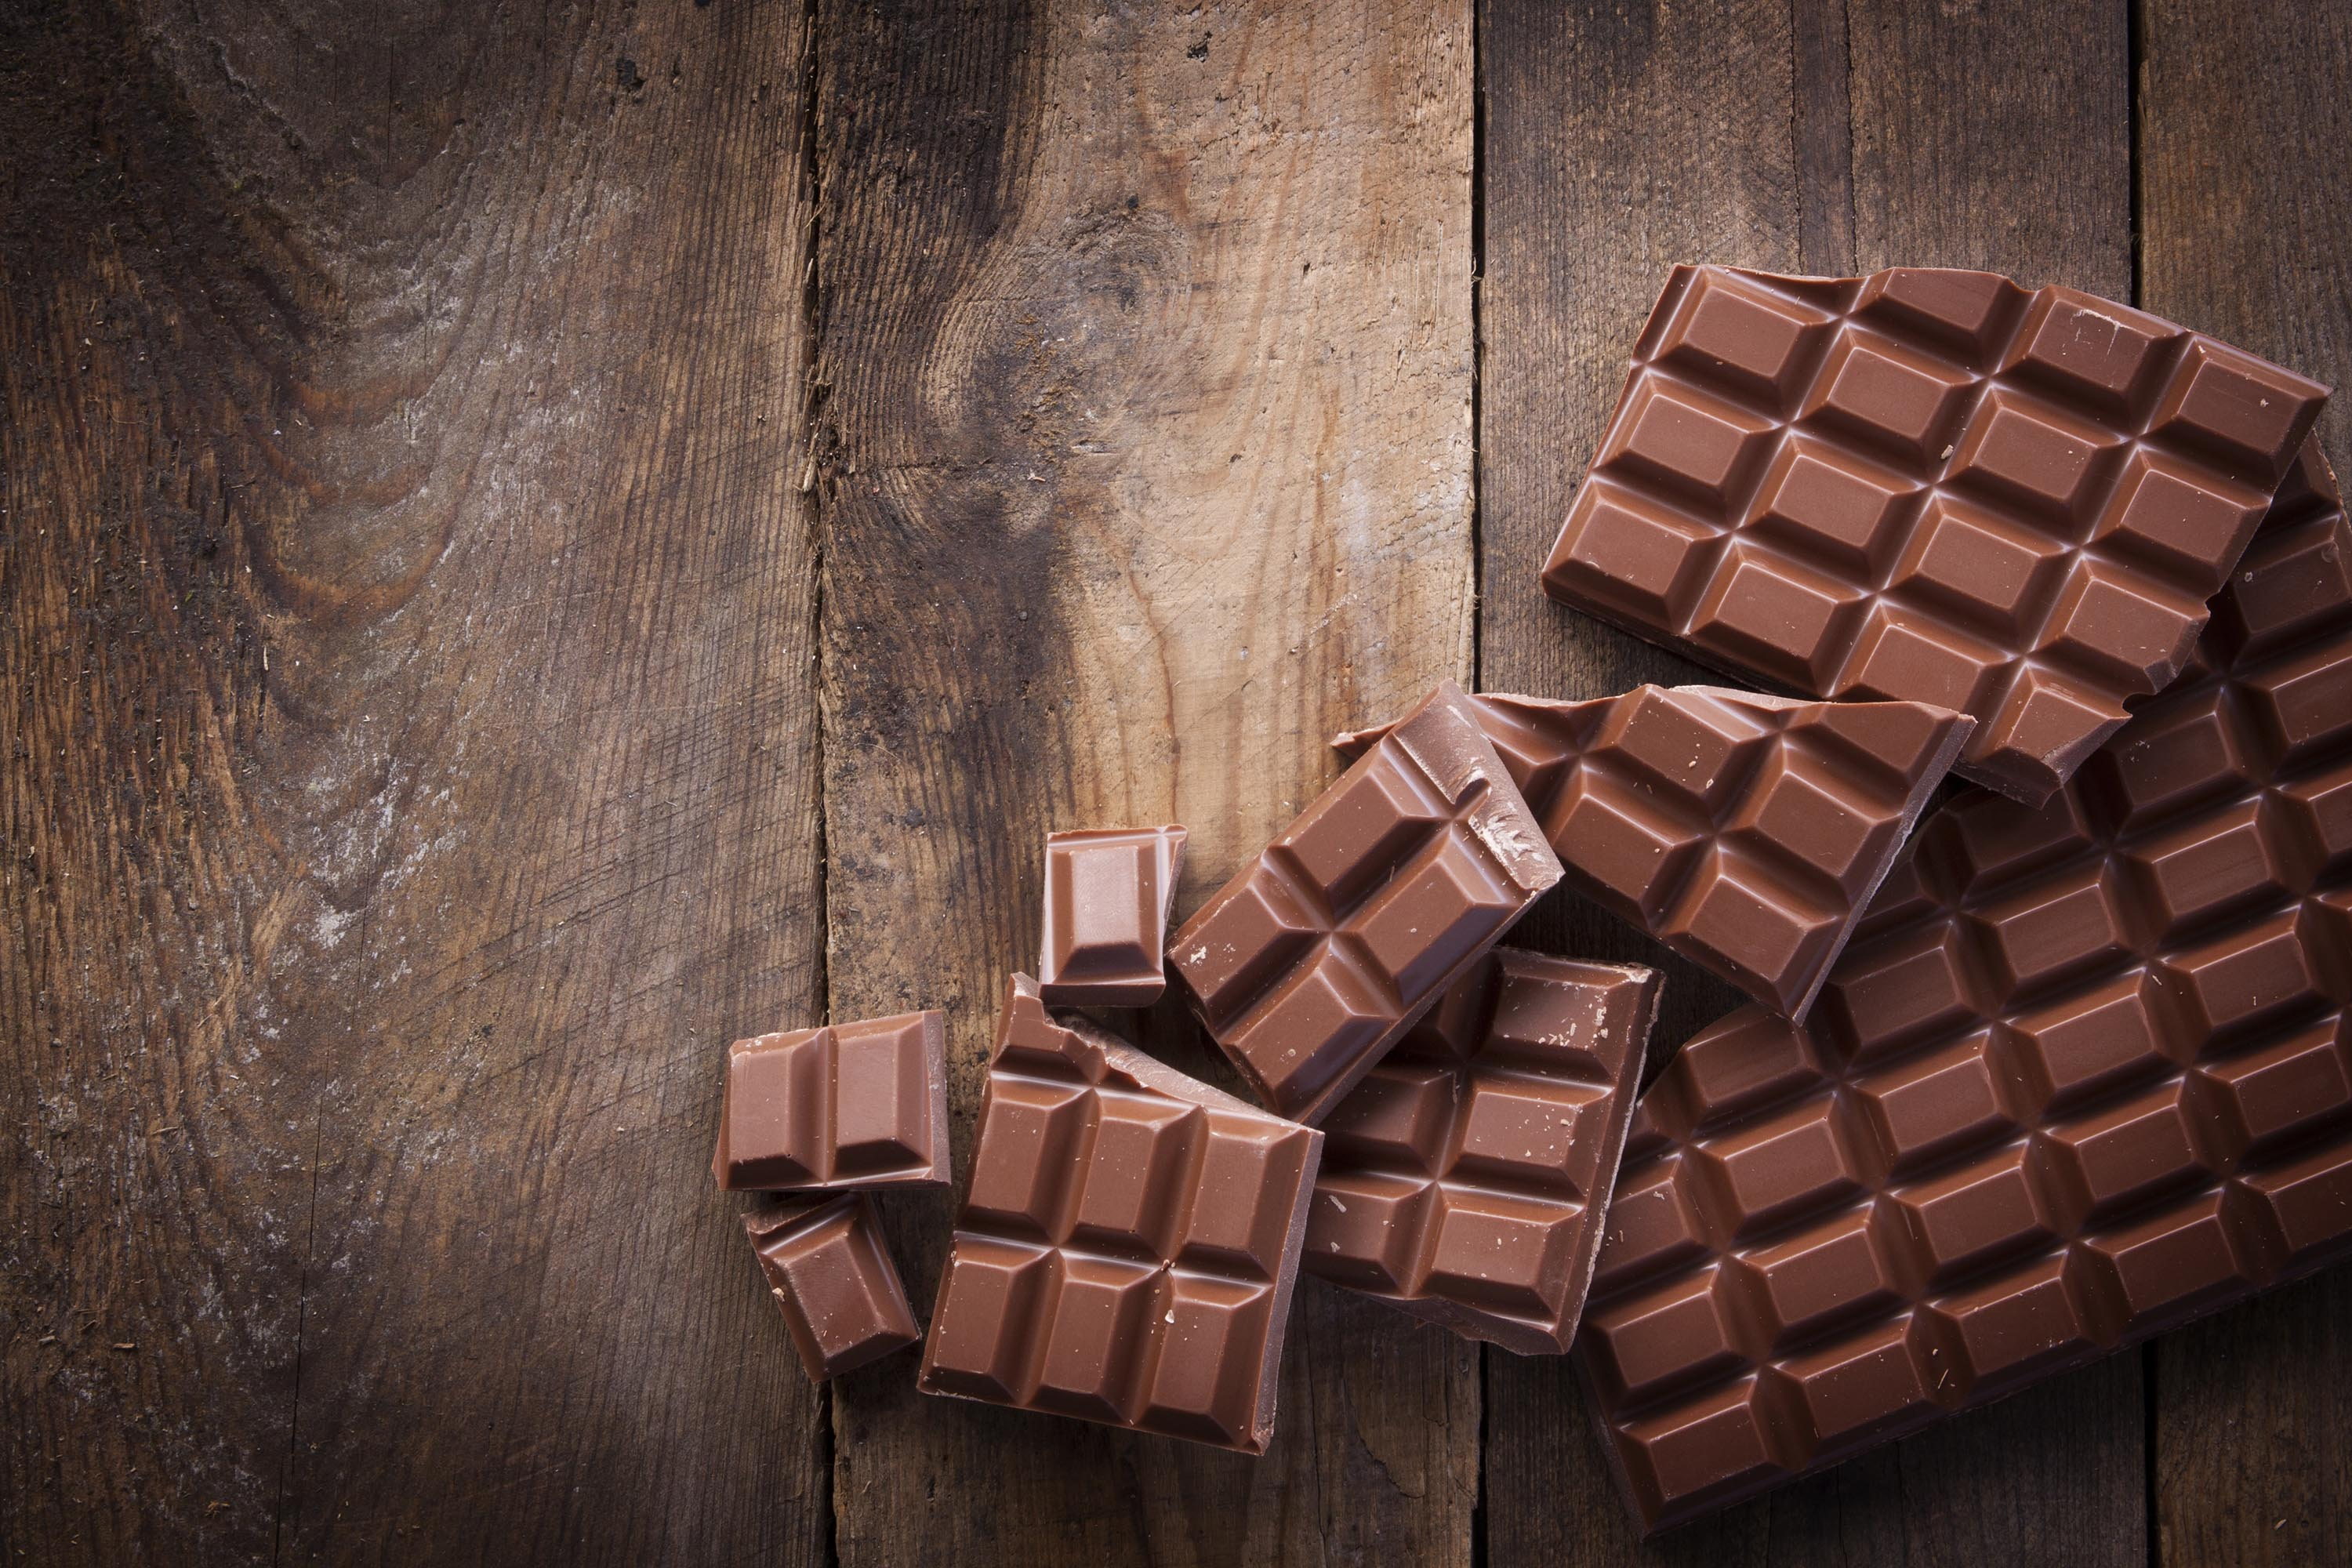 chocolate a health food Food fun & news 11 next-level chocolates with unbelievable health benefits stop everything: you can justify a chocolate addiction with these super-healthy bars they're practically superfoods you can thank us later.